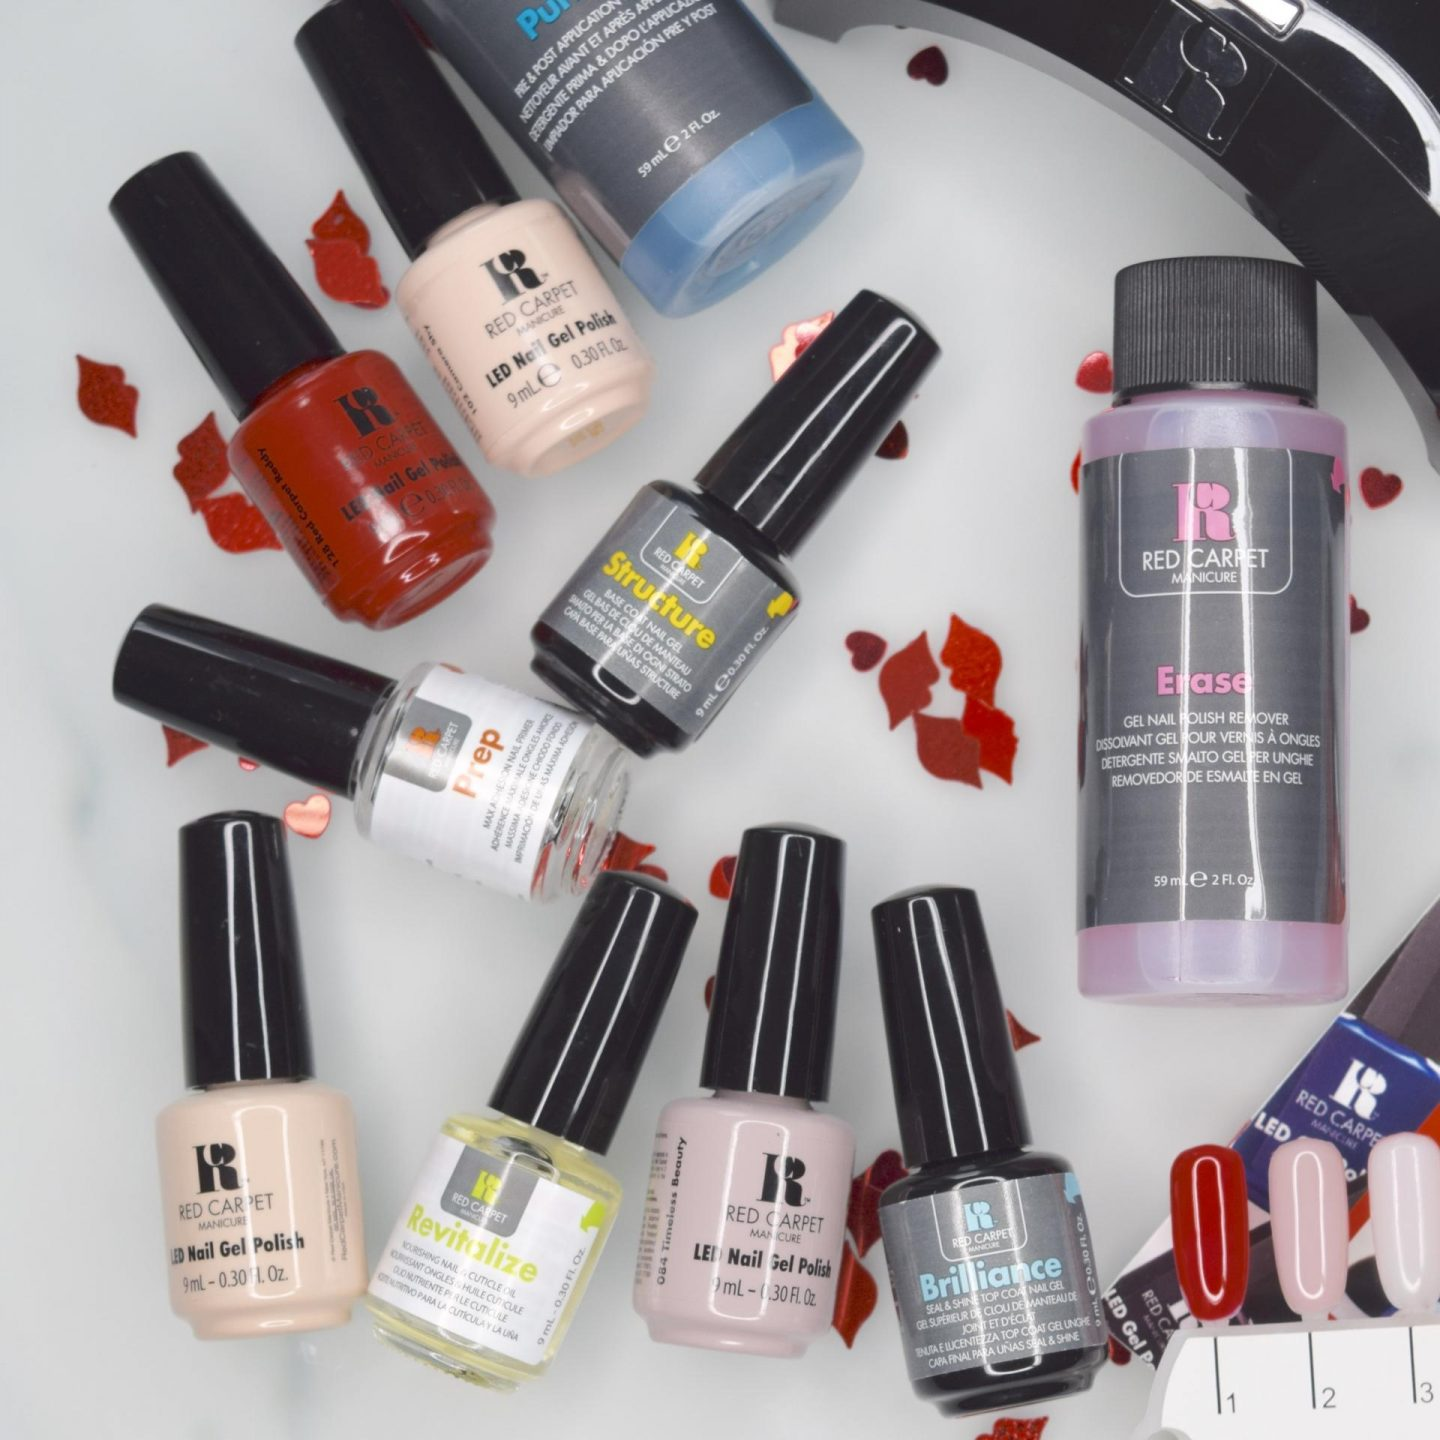 RED CARPET MANICURE GEL POLISH KIT REVIEW